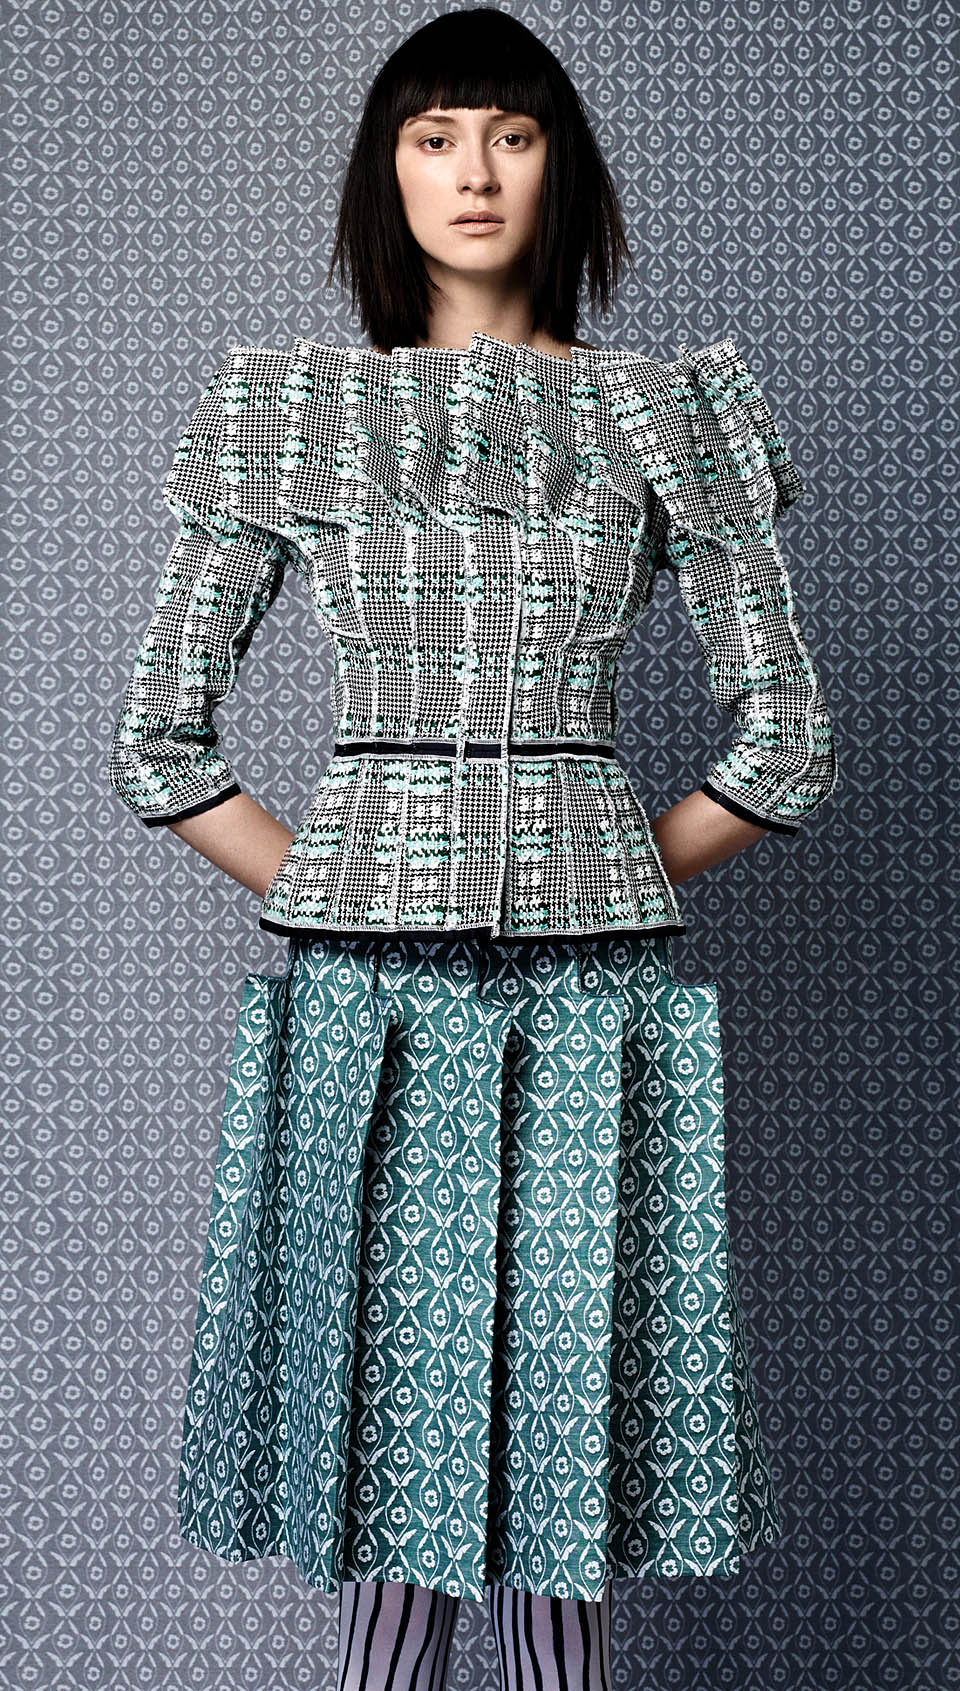 thom-browne-resort2014-06.jpg